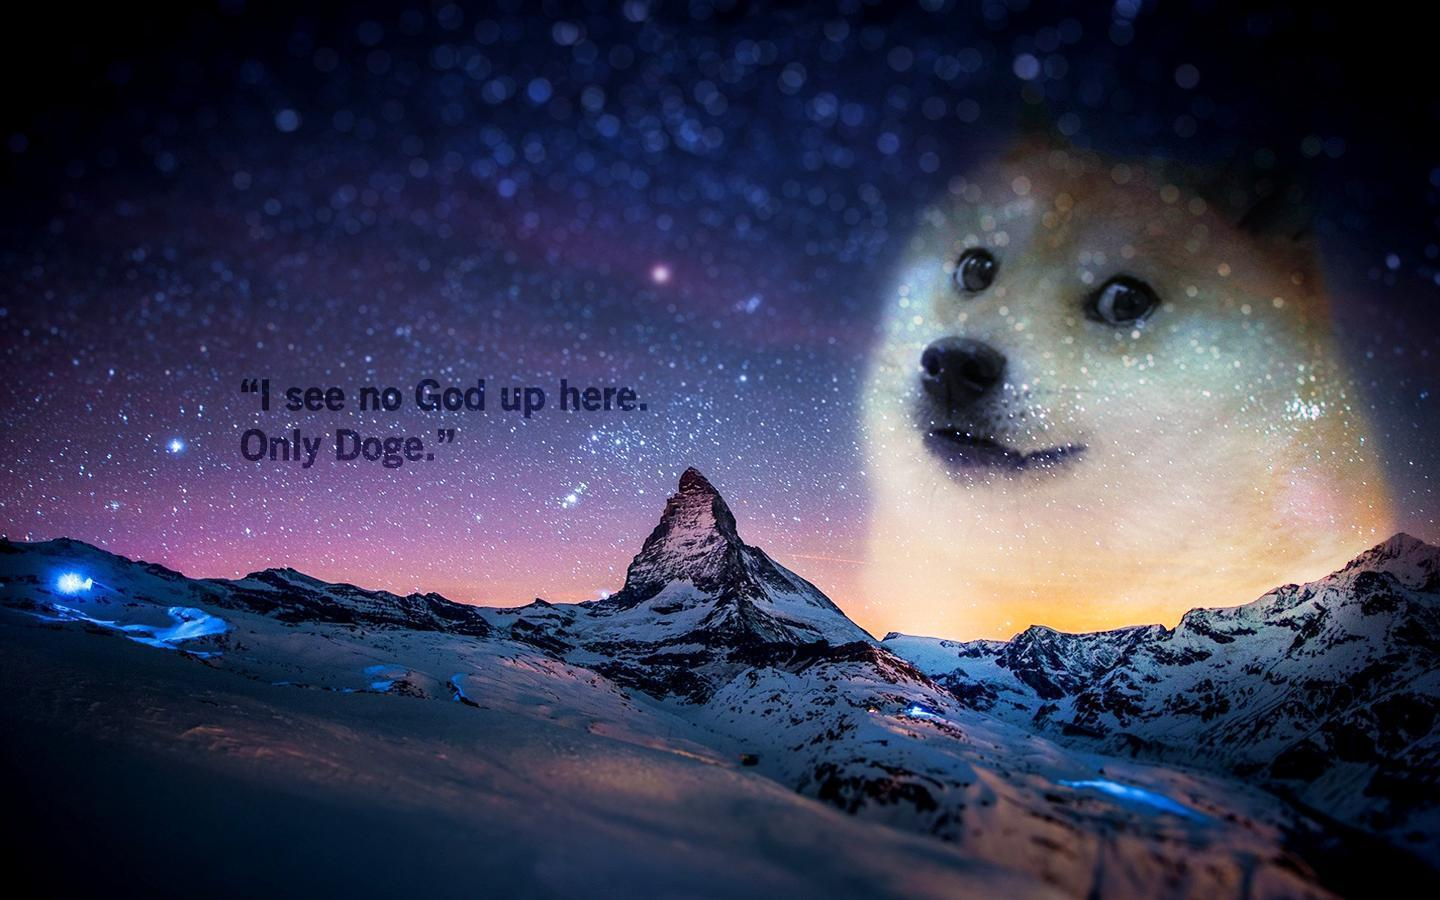 Doge Wallpapers - Wall...